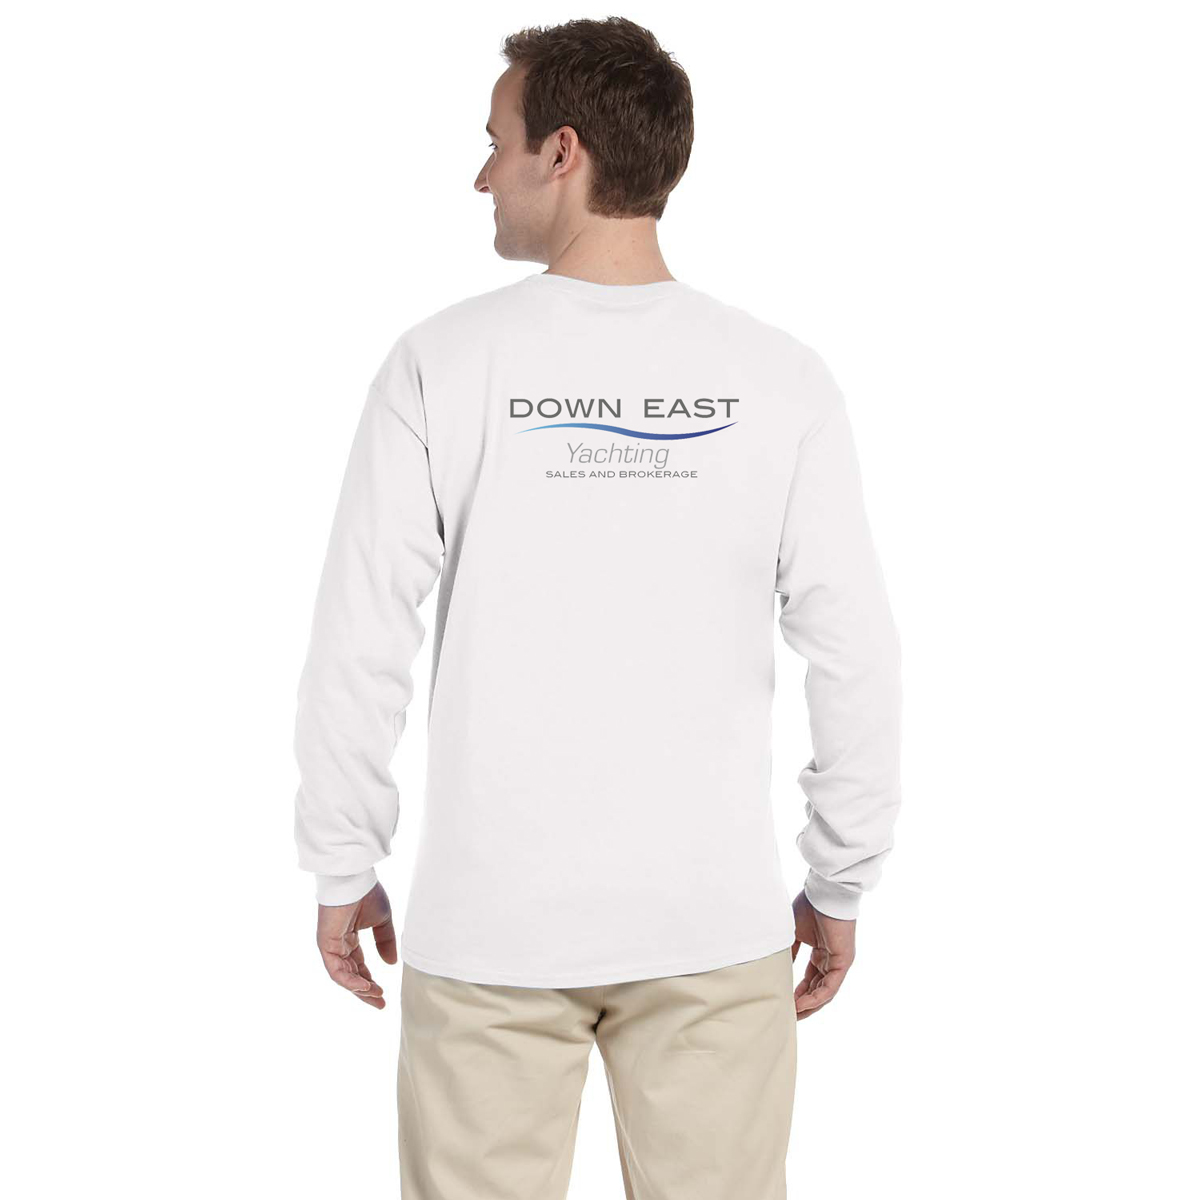 Down East Yachting - Men's Tech Tee L/S